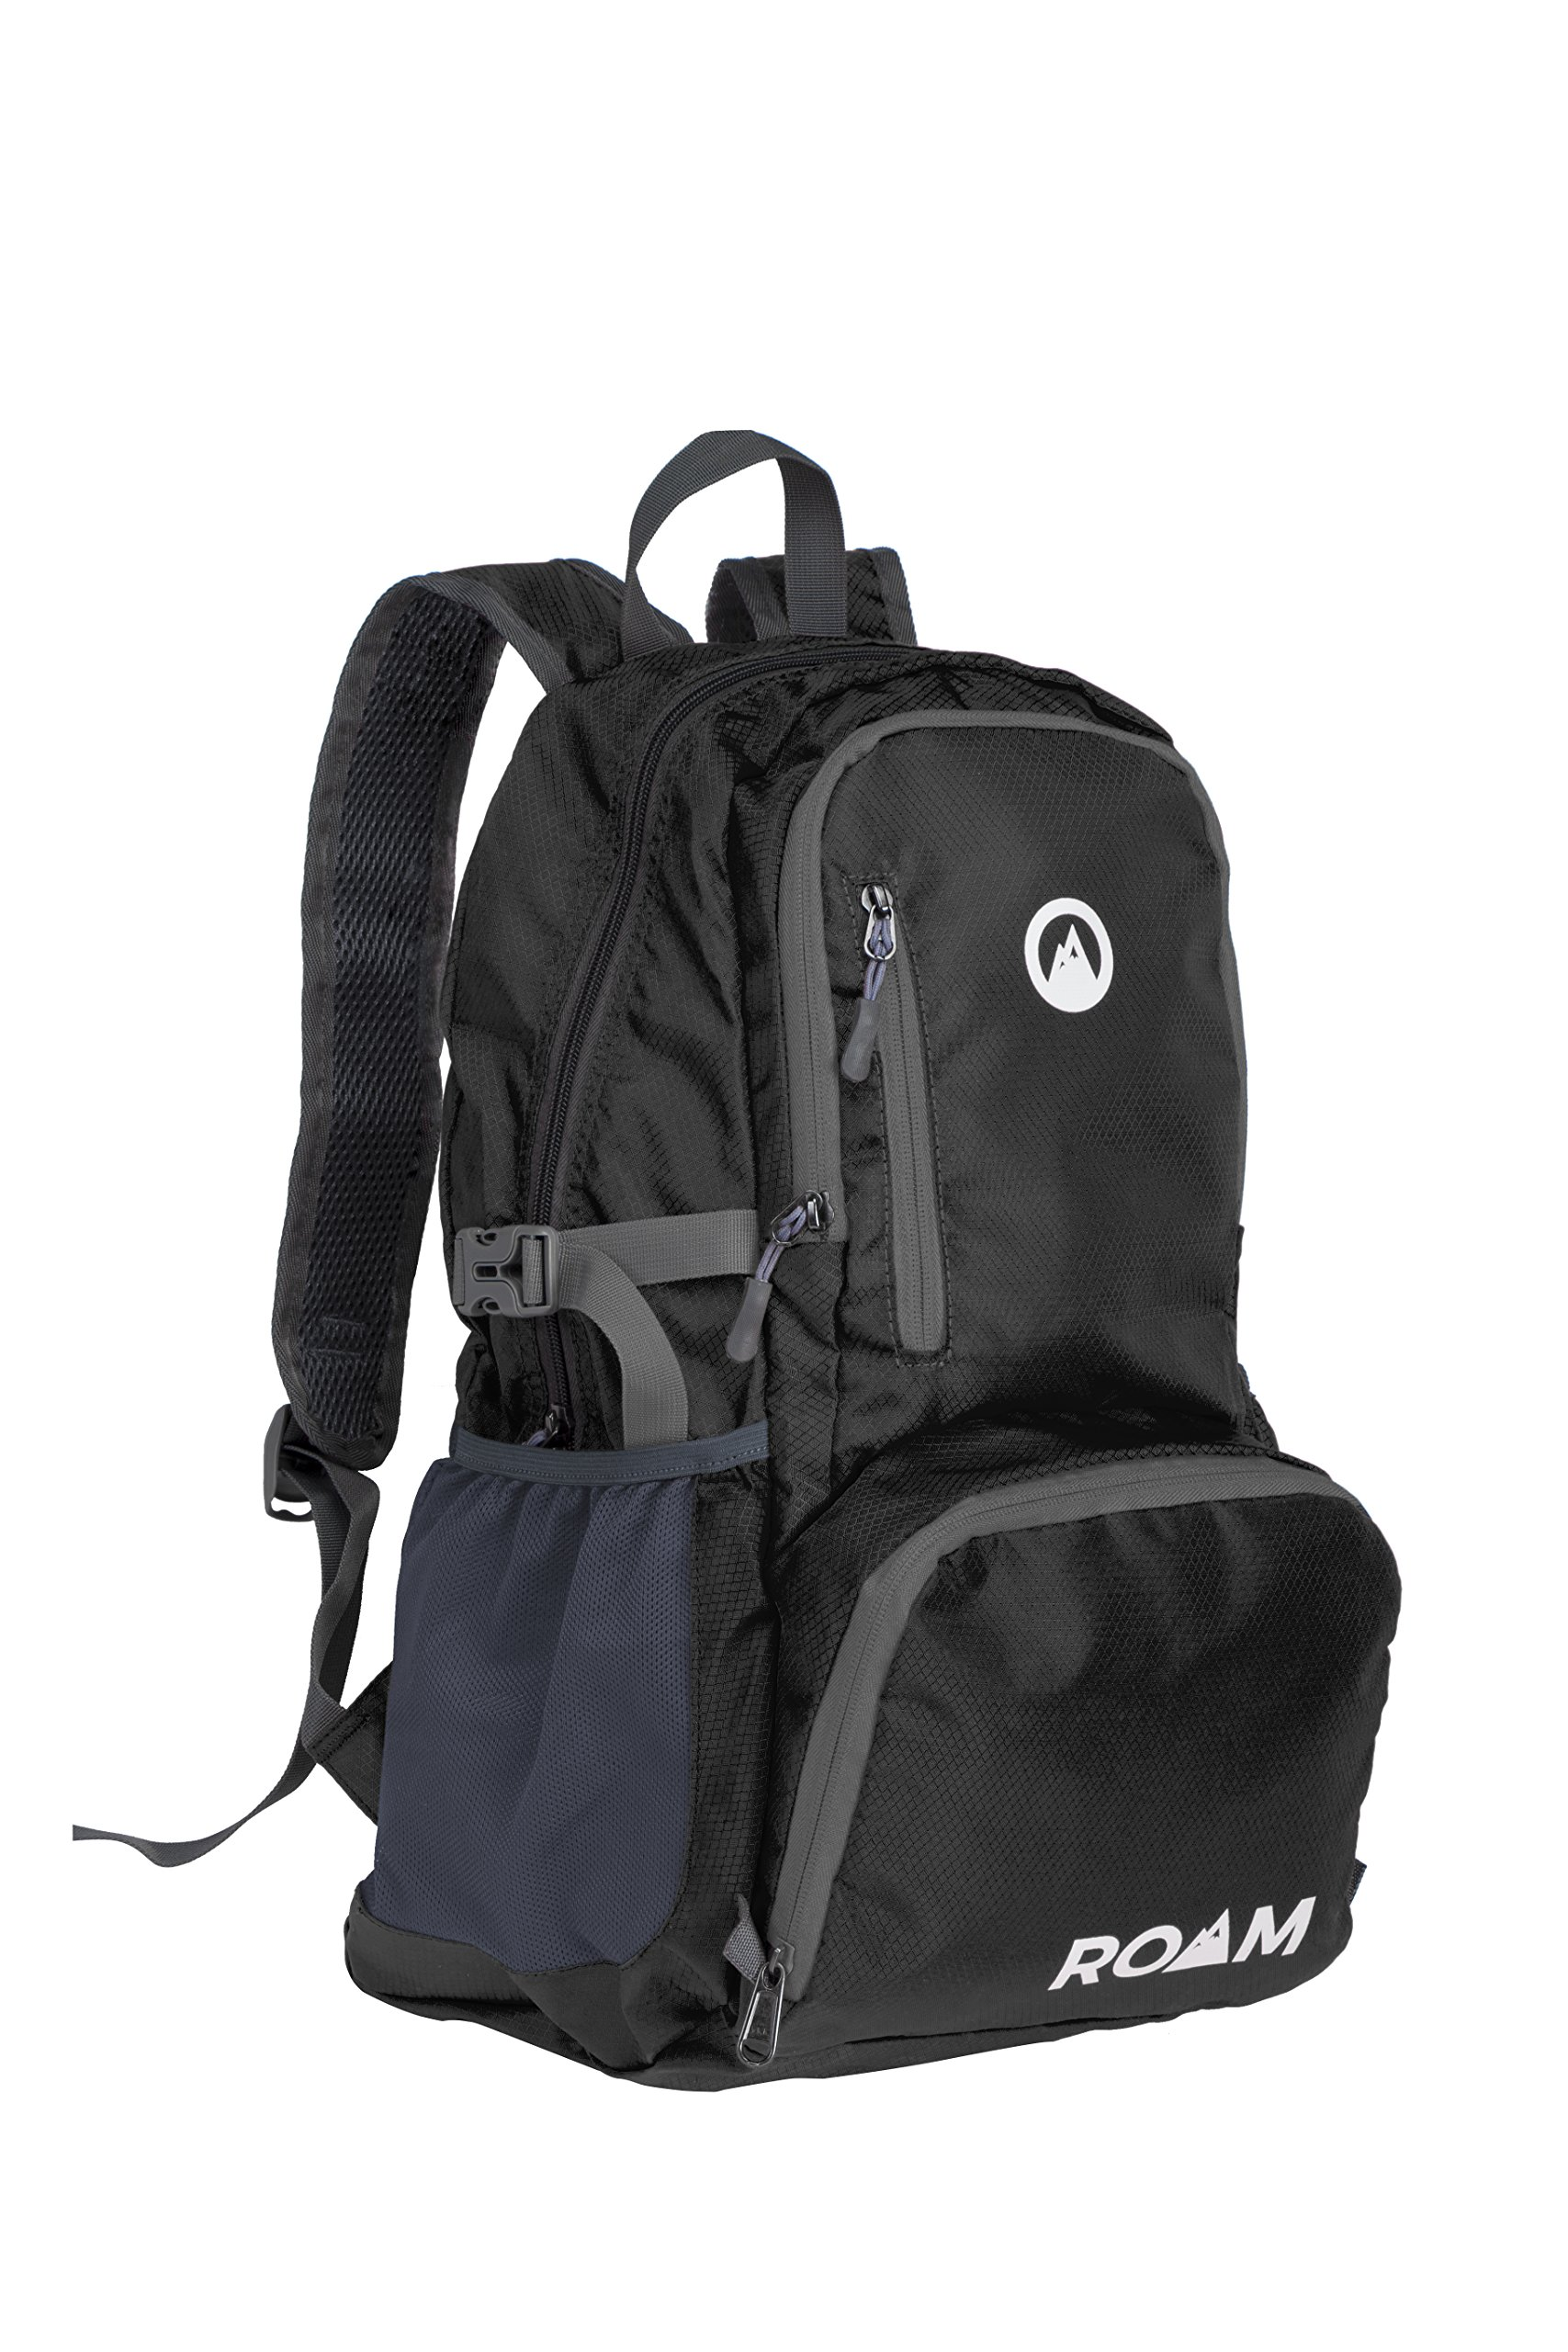 Roam Packable Backpack – Lightweight Foldable Daypack Water-Resistant, 25L, – Durable Tear-Resistant Nylon Weave – Daypack for Travel, Hiking, Backpacking, Camping, Mountaineering, Beach, Outdoors by Roam (Image #1)